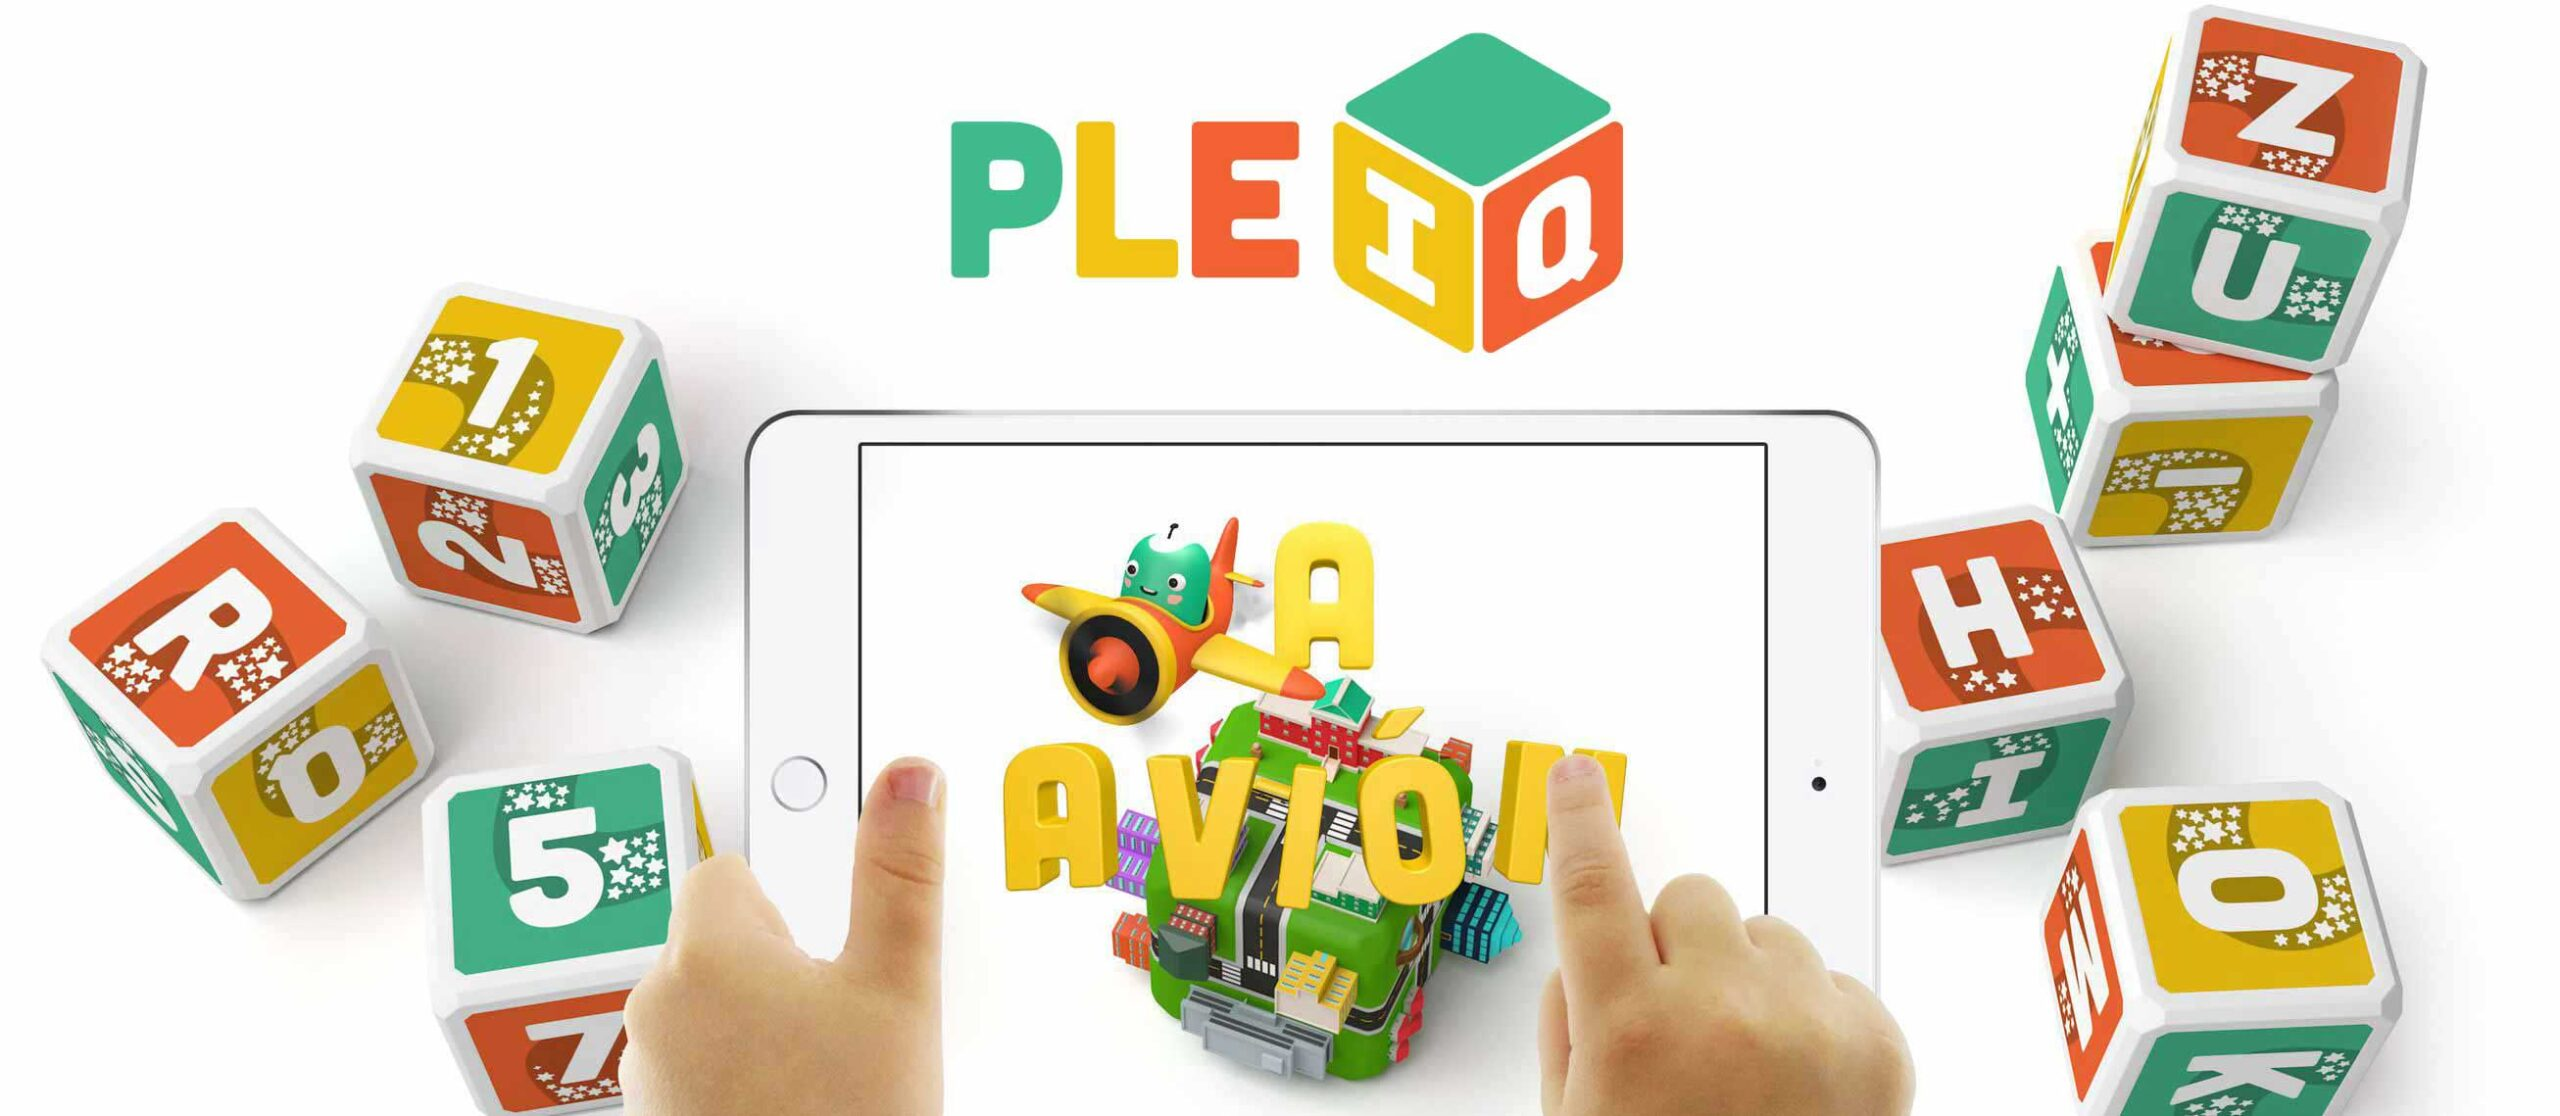 PleIQ Educational Bilingual Smart Cubes